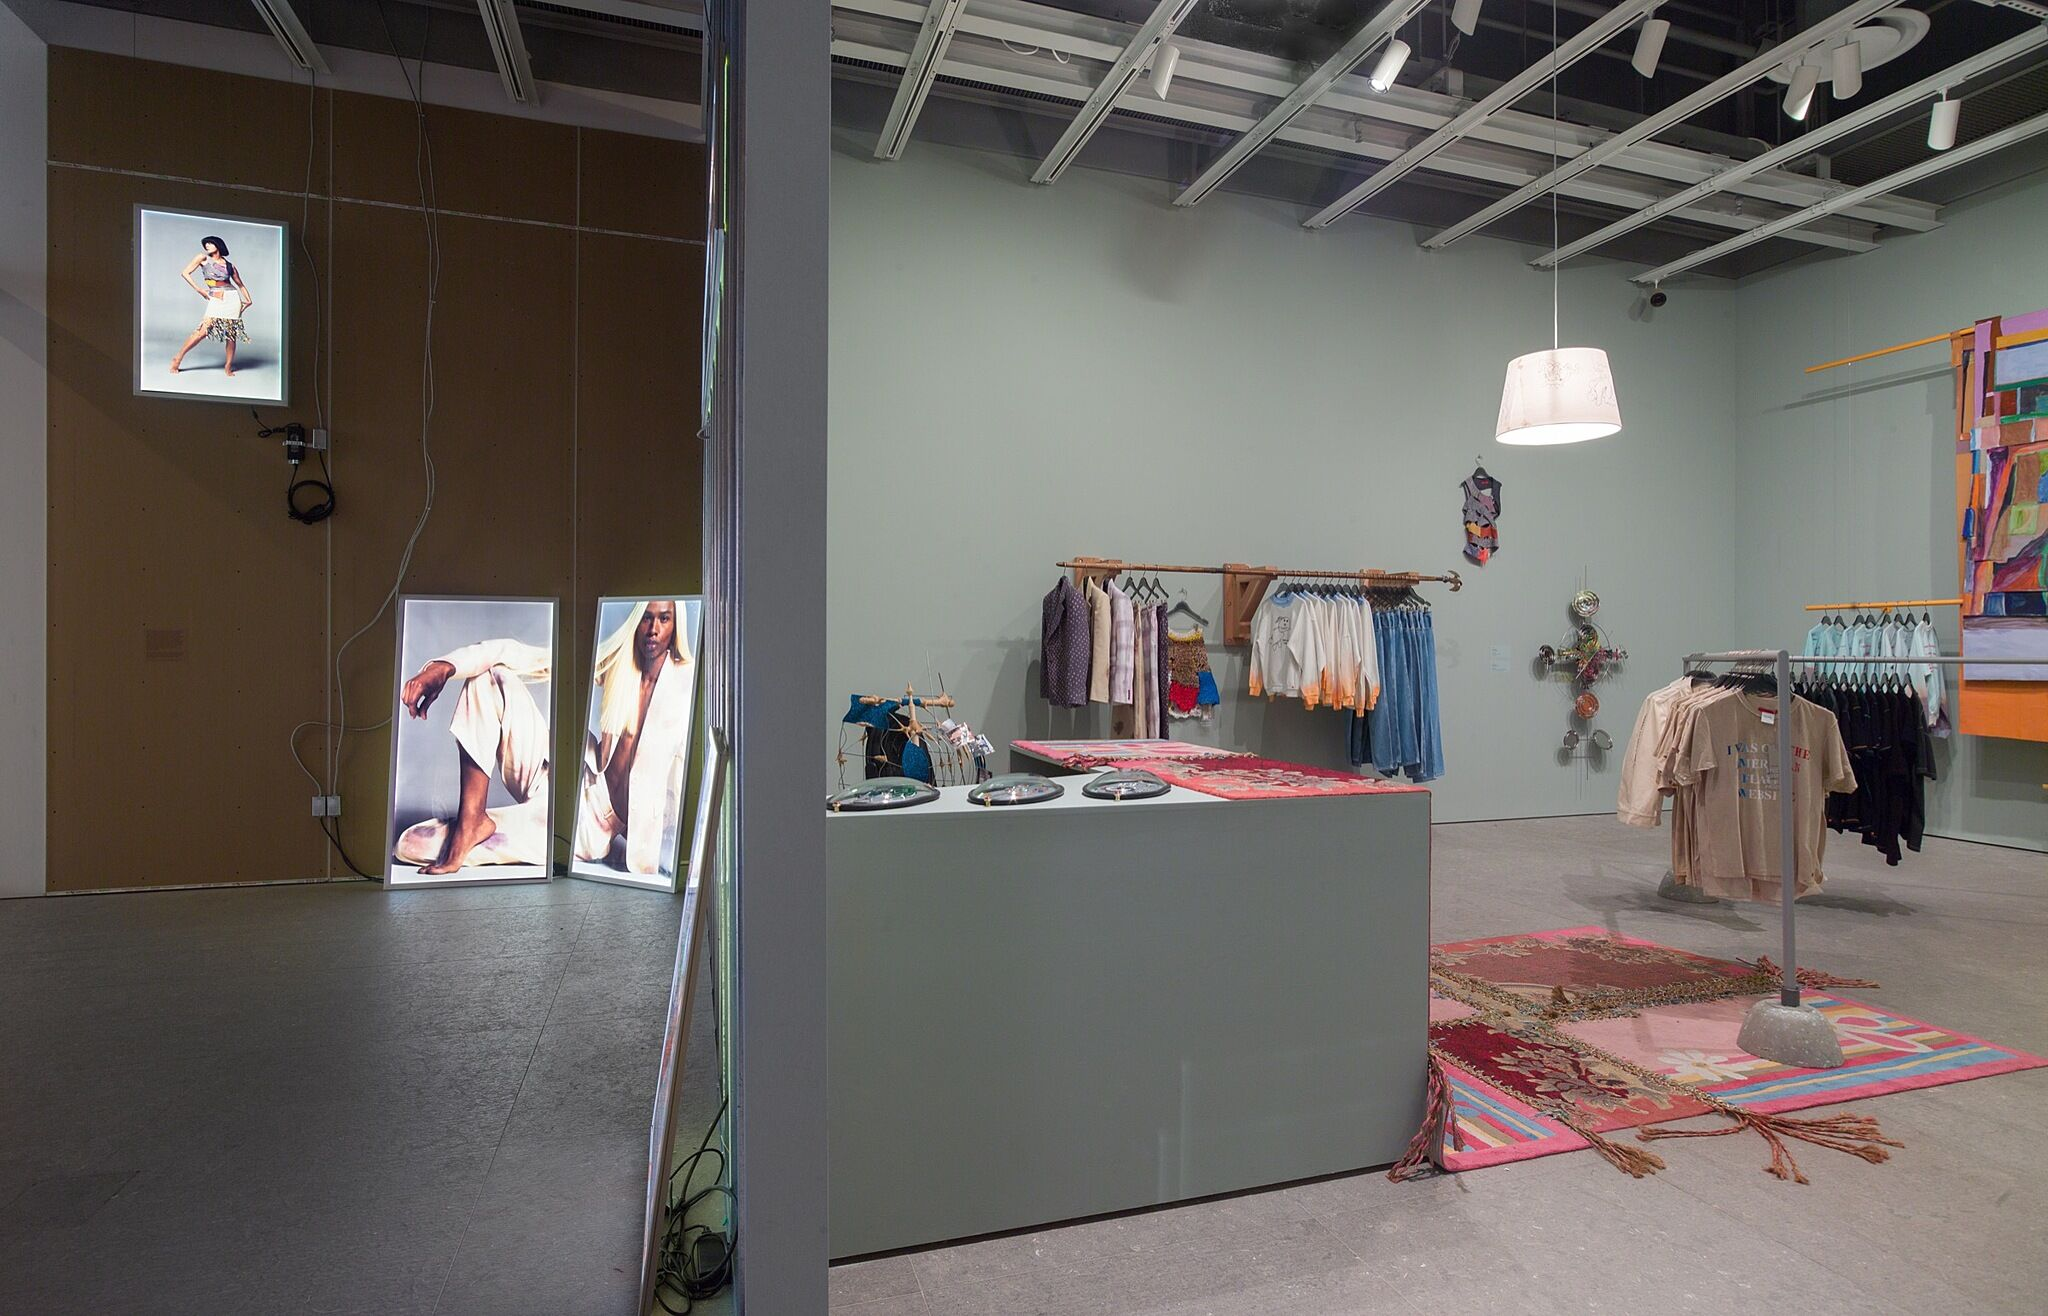 Two gallery spaces: one with lightbox photos of models and the other a faux retail shop.